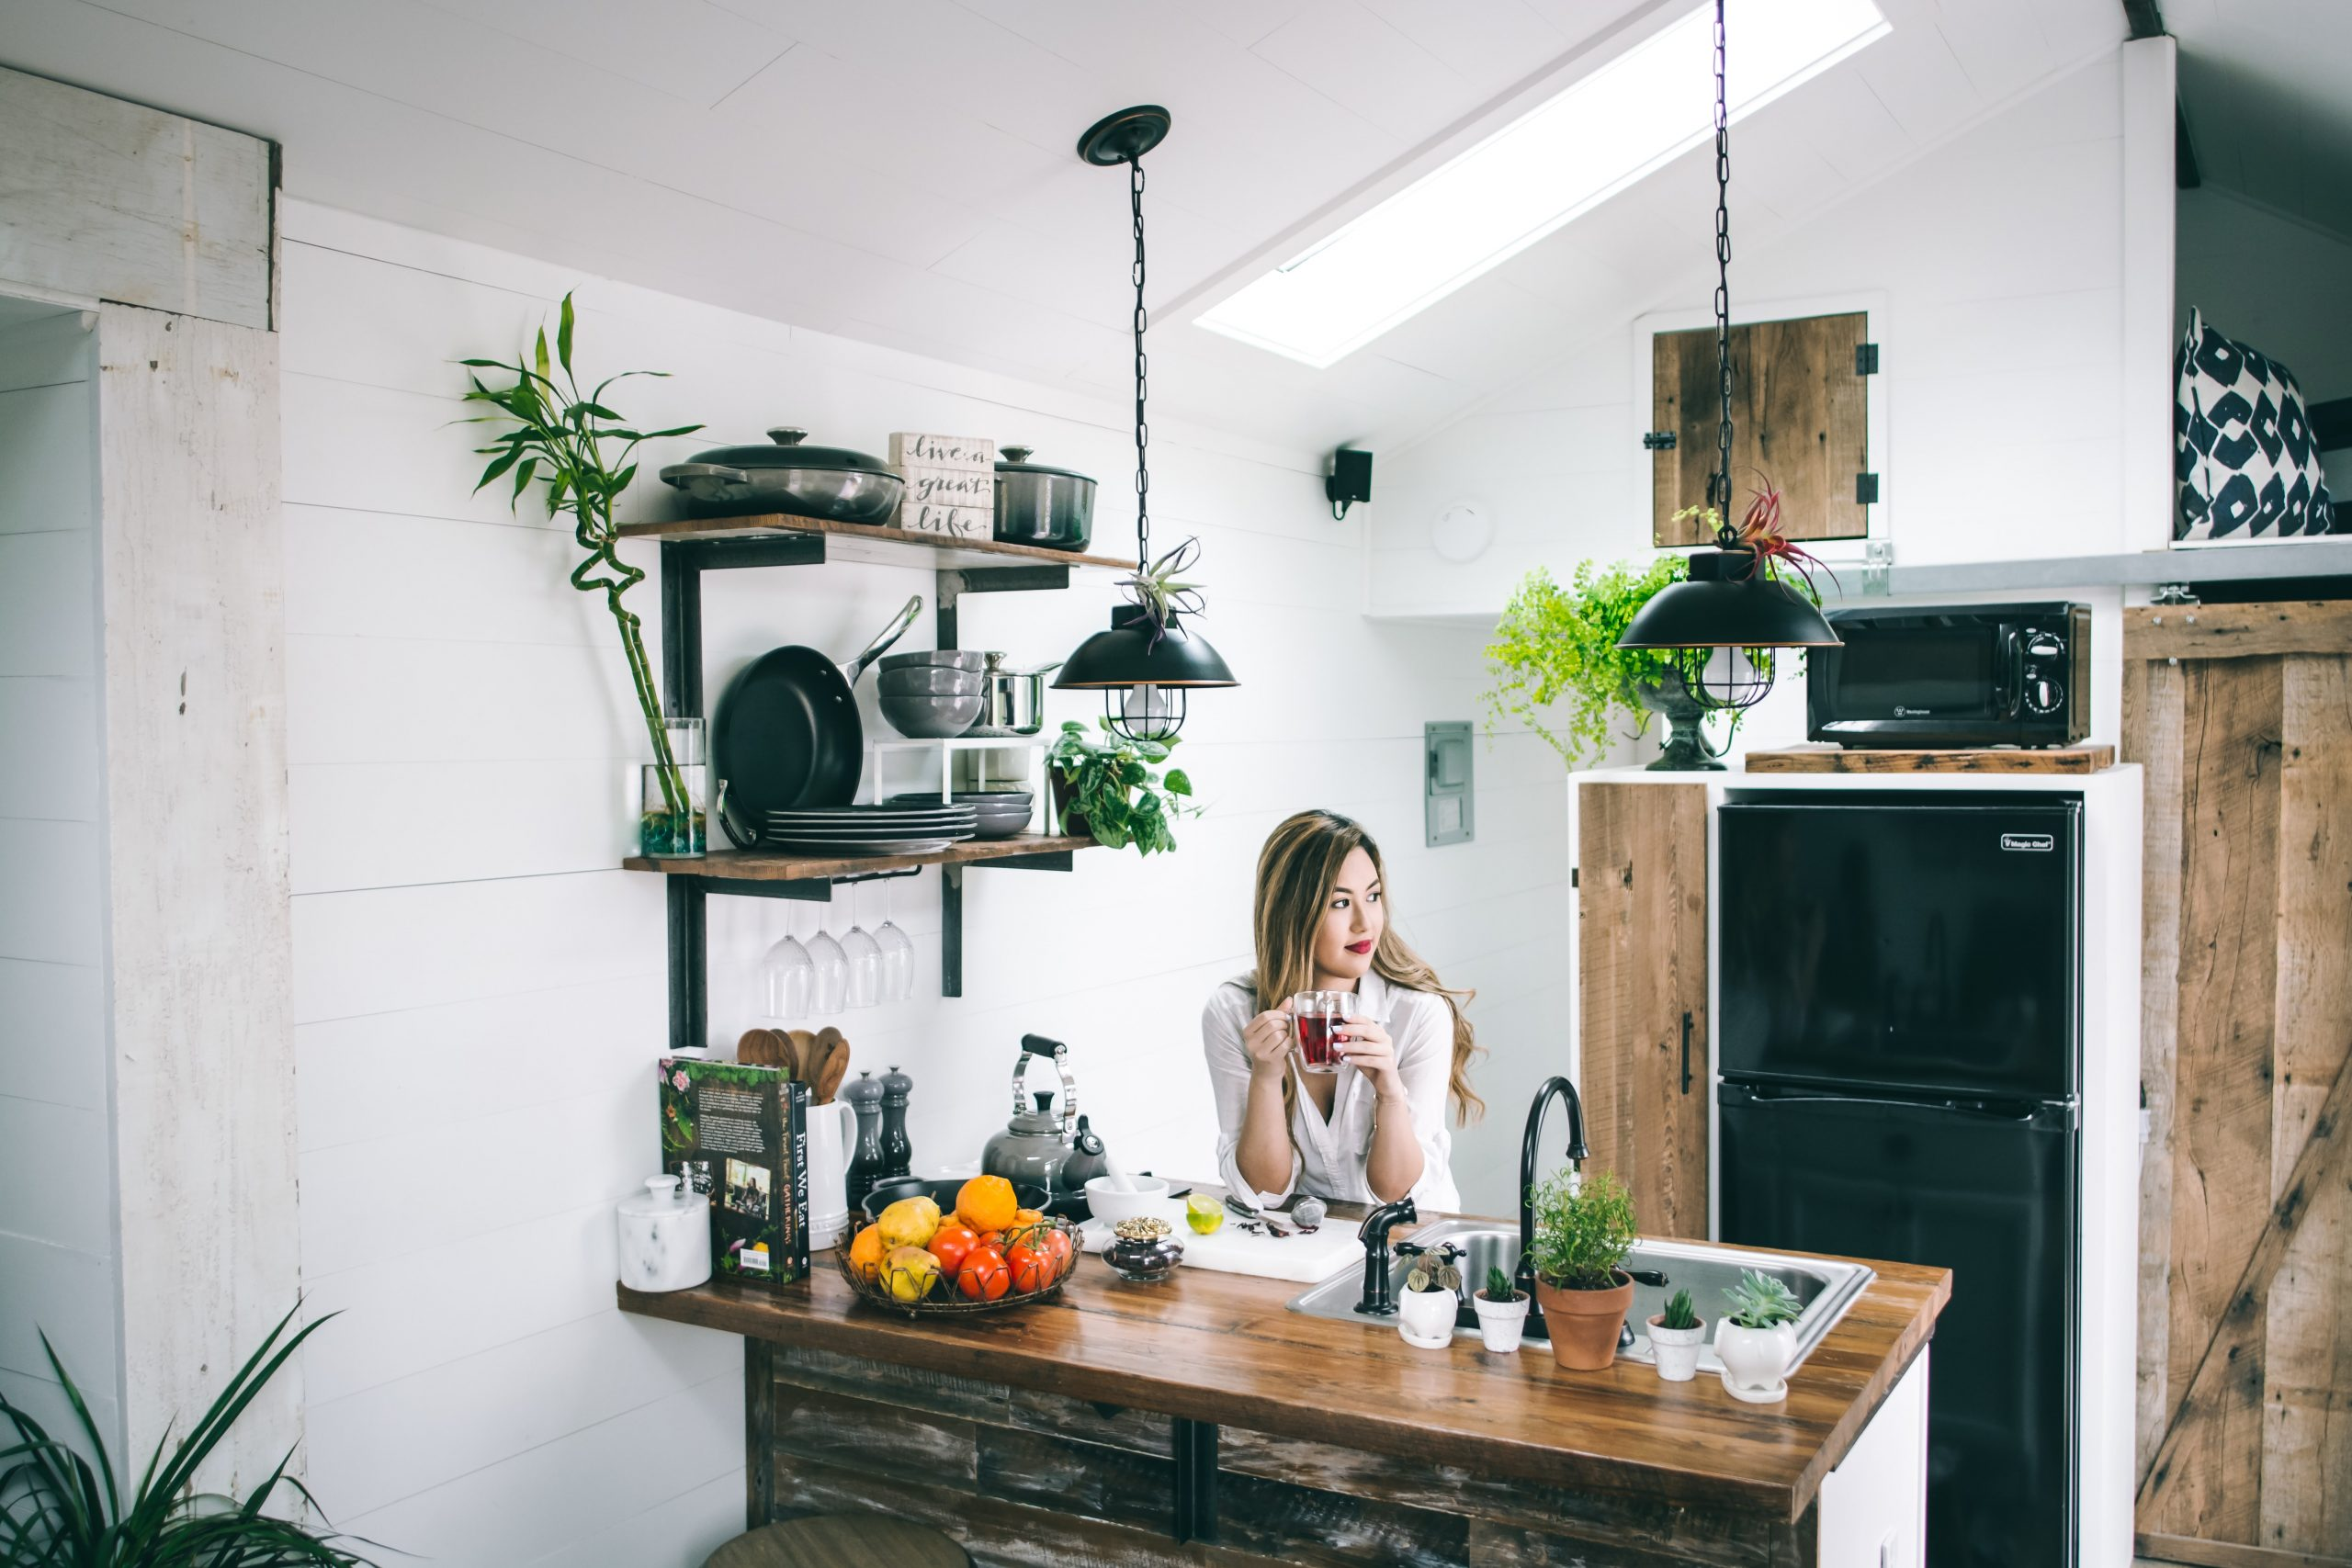 Best 22 Home Decor Services in Singapore - Best In Singapore